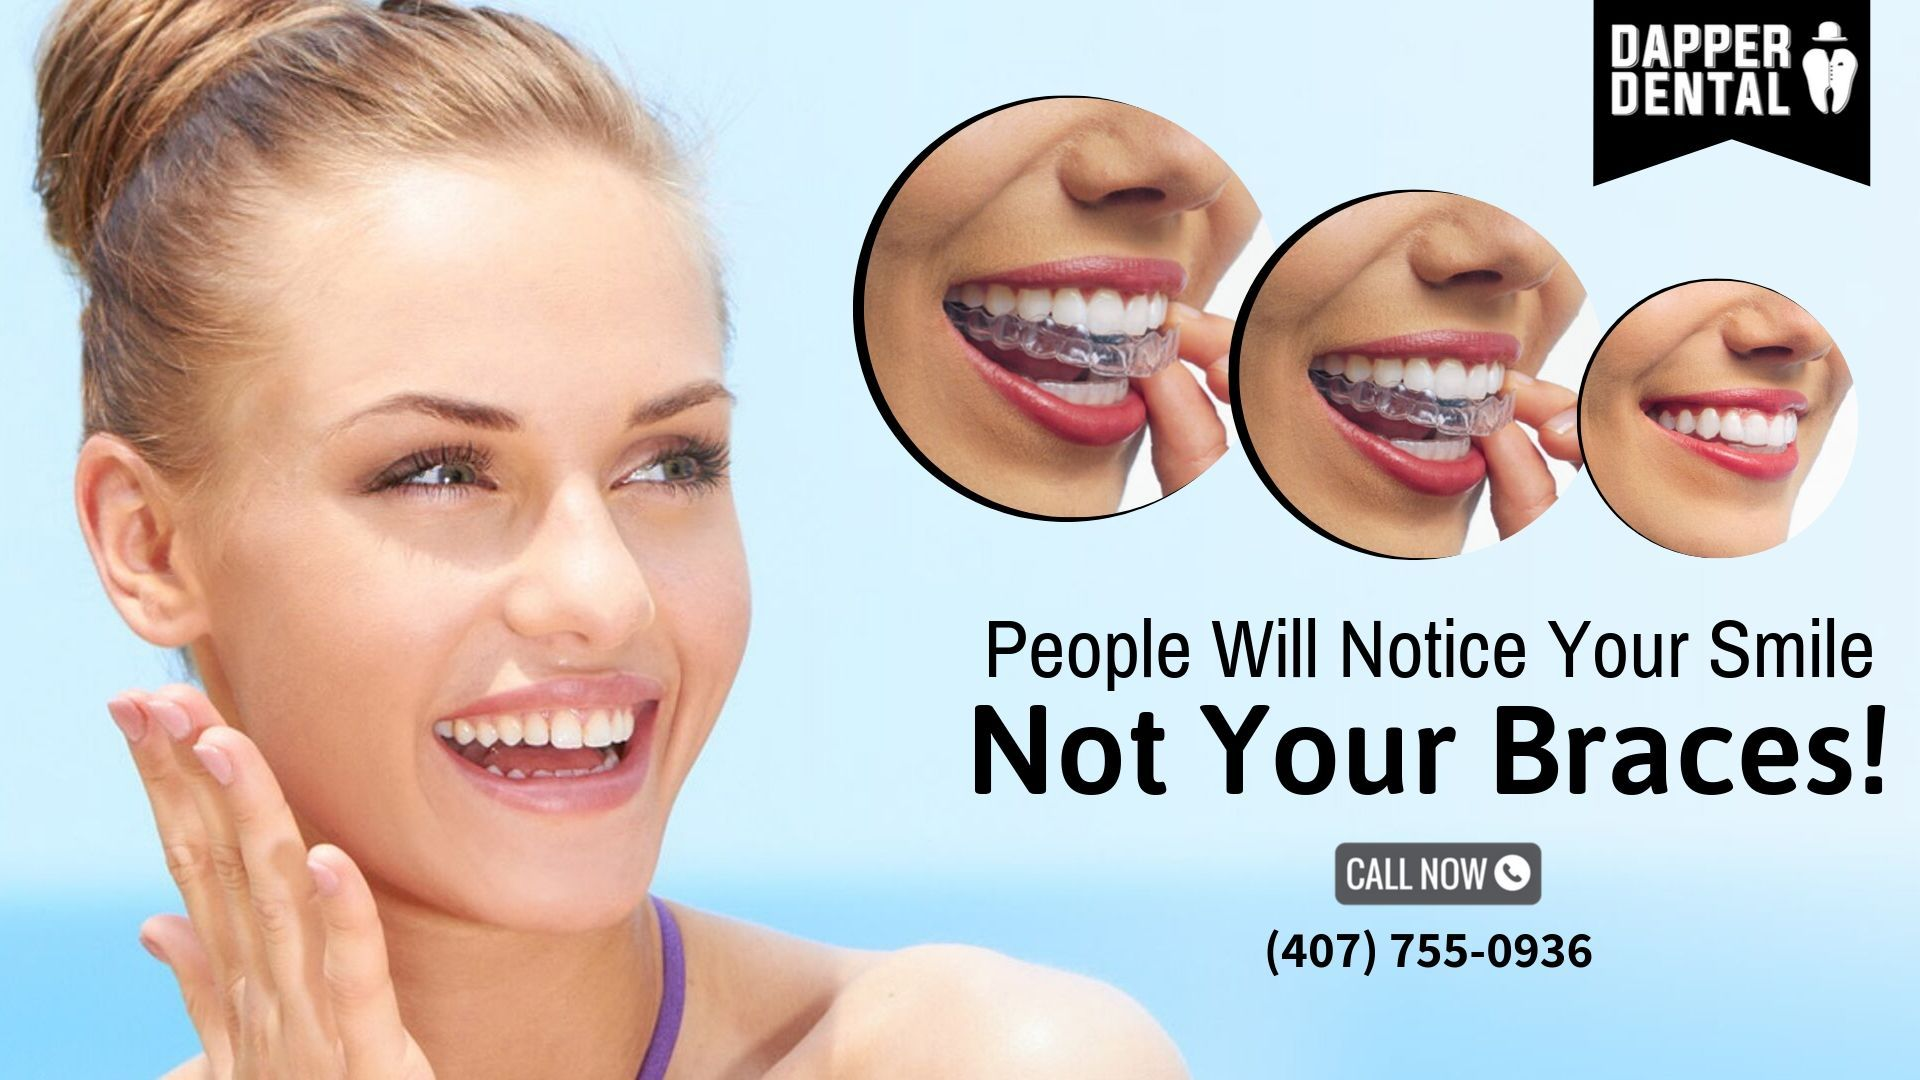 Straighten Your Teeth Without Metal Brackets Invisalign